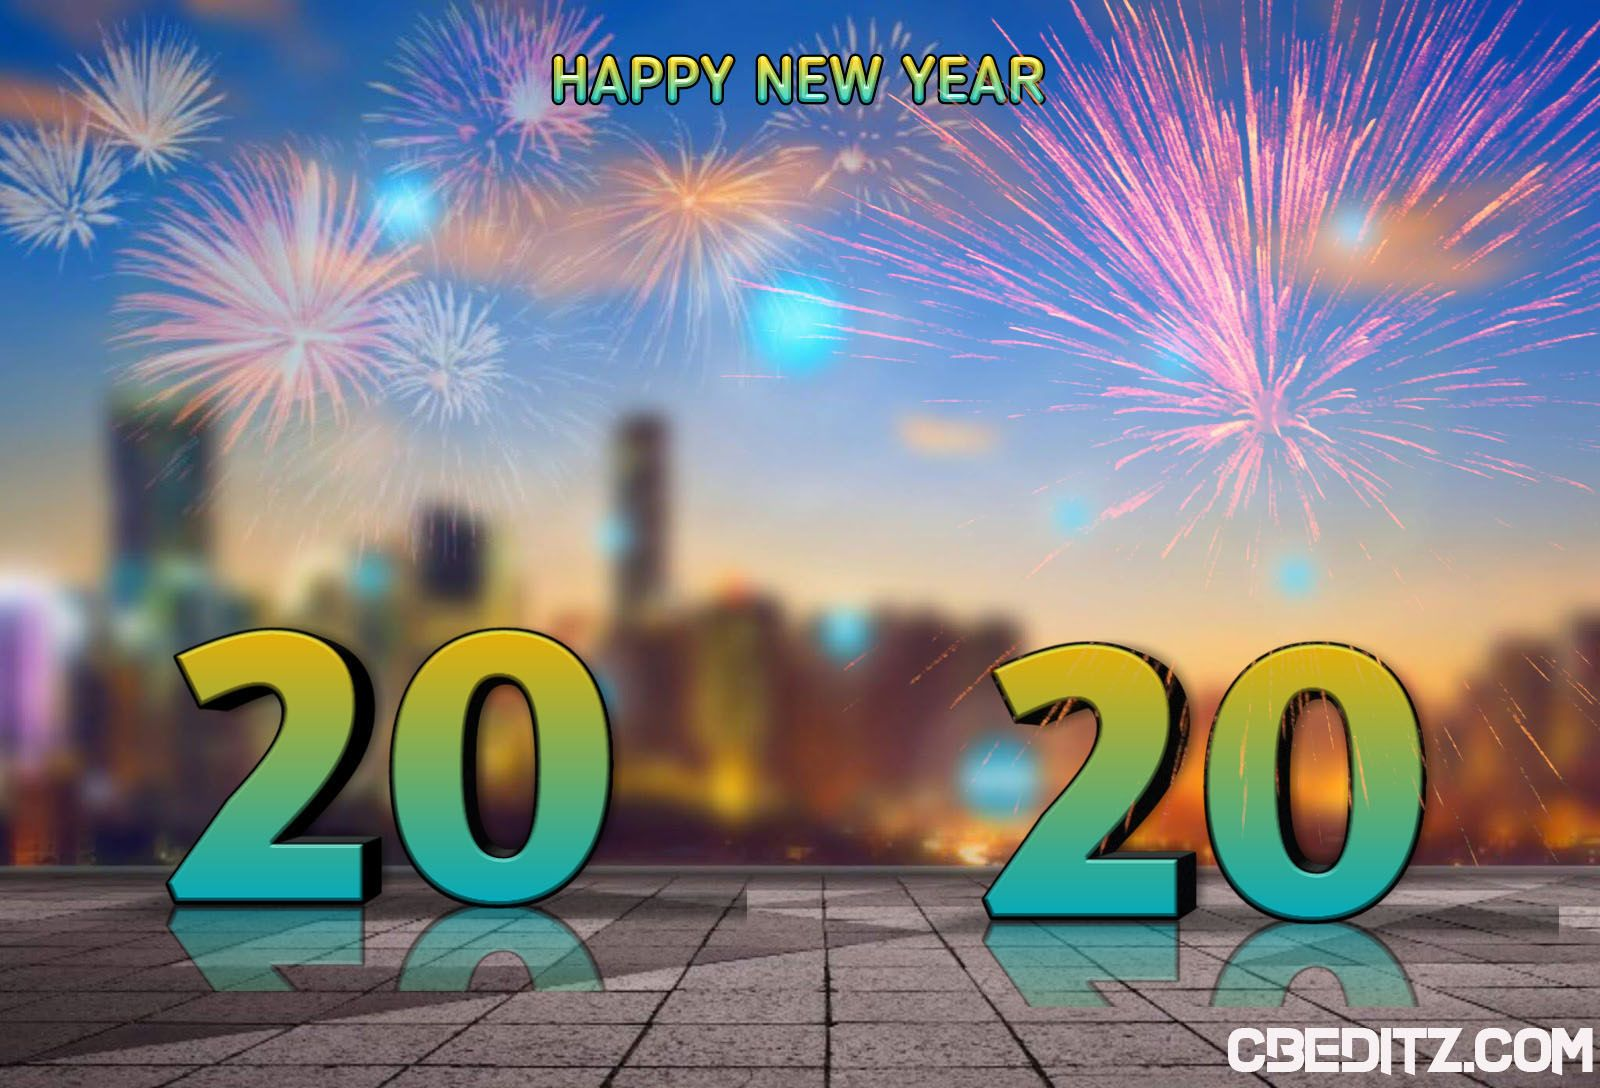 Top New Year 2020 Editing Background 2020 Happy New Year Background New Background Images Happy New Year 2020